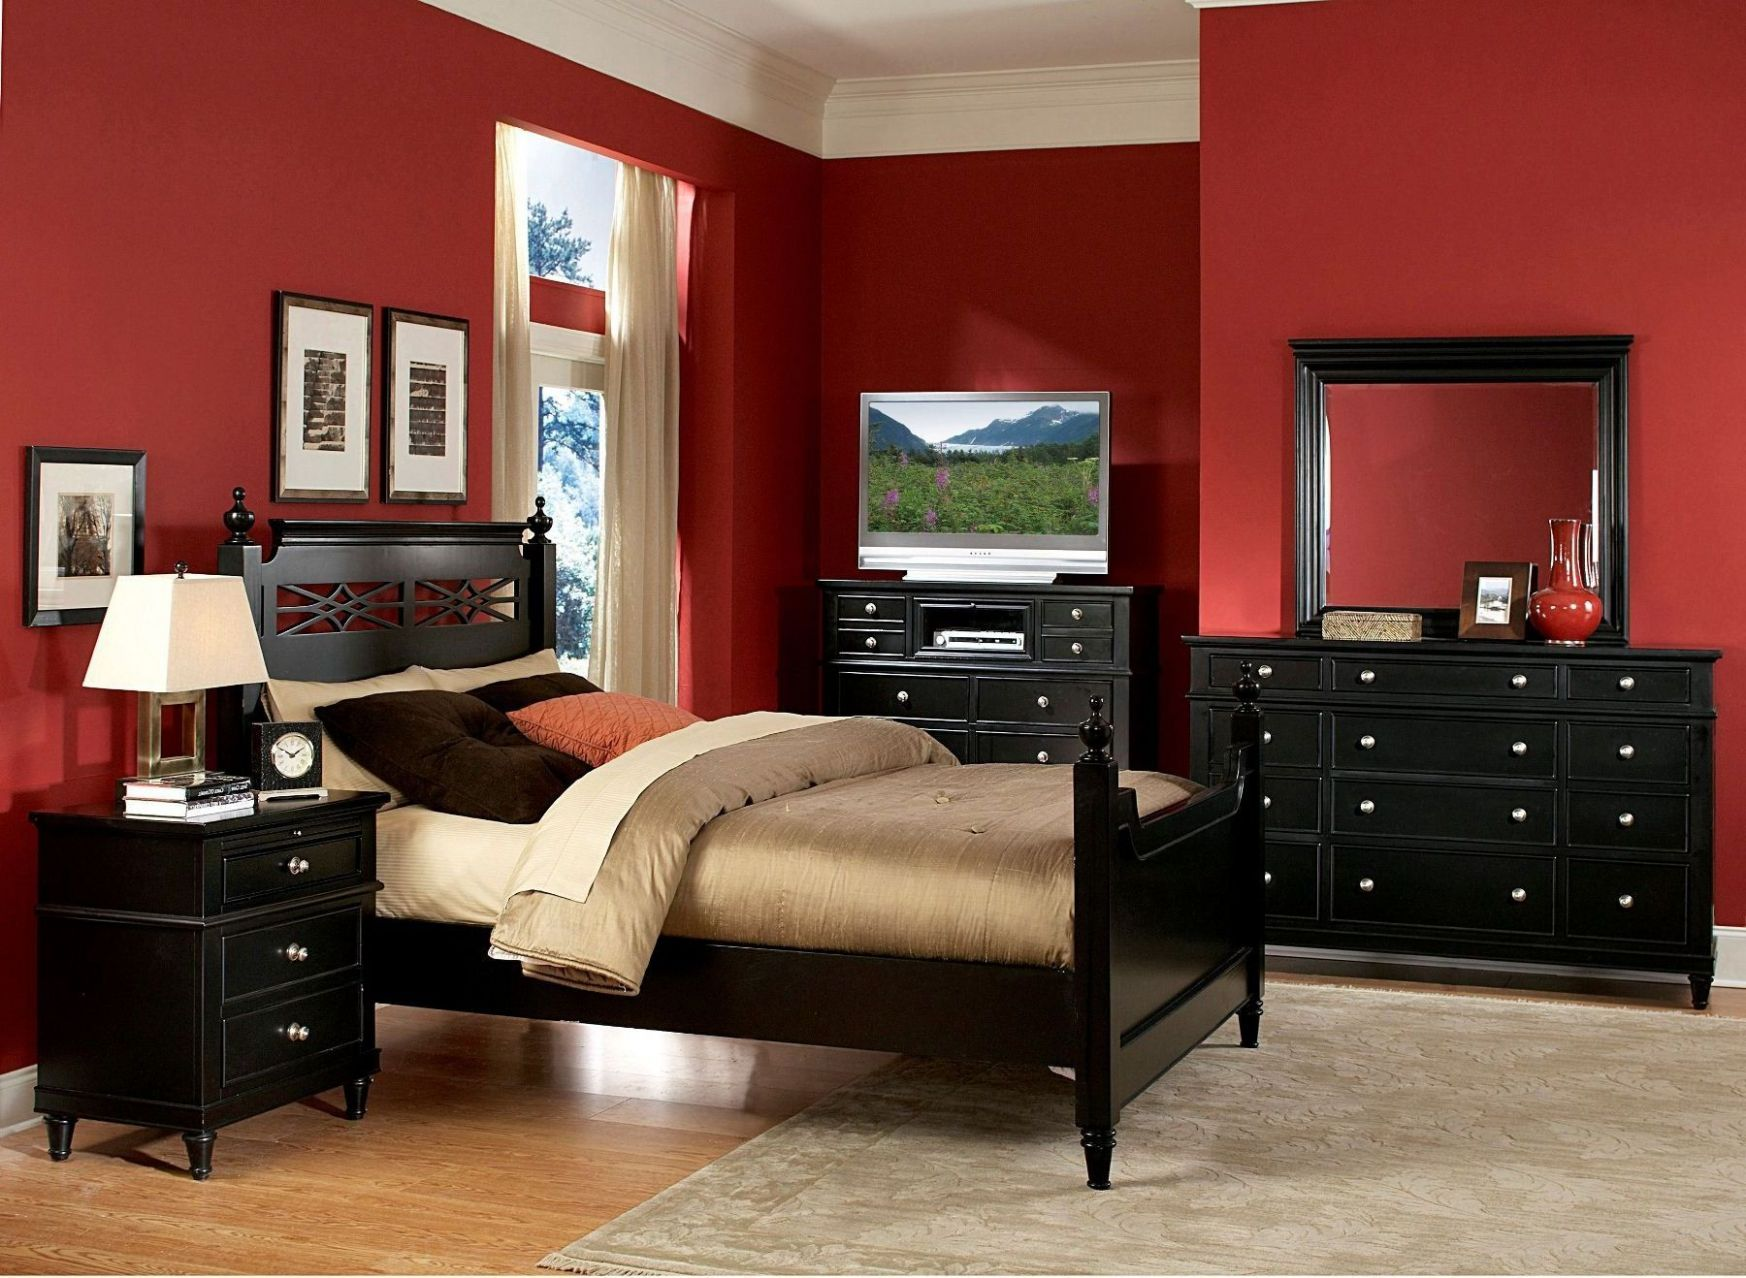 Bedroom Ideas With Red Walls | Home Decor